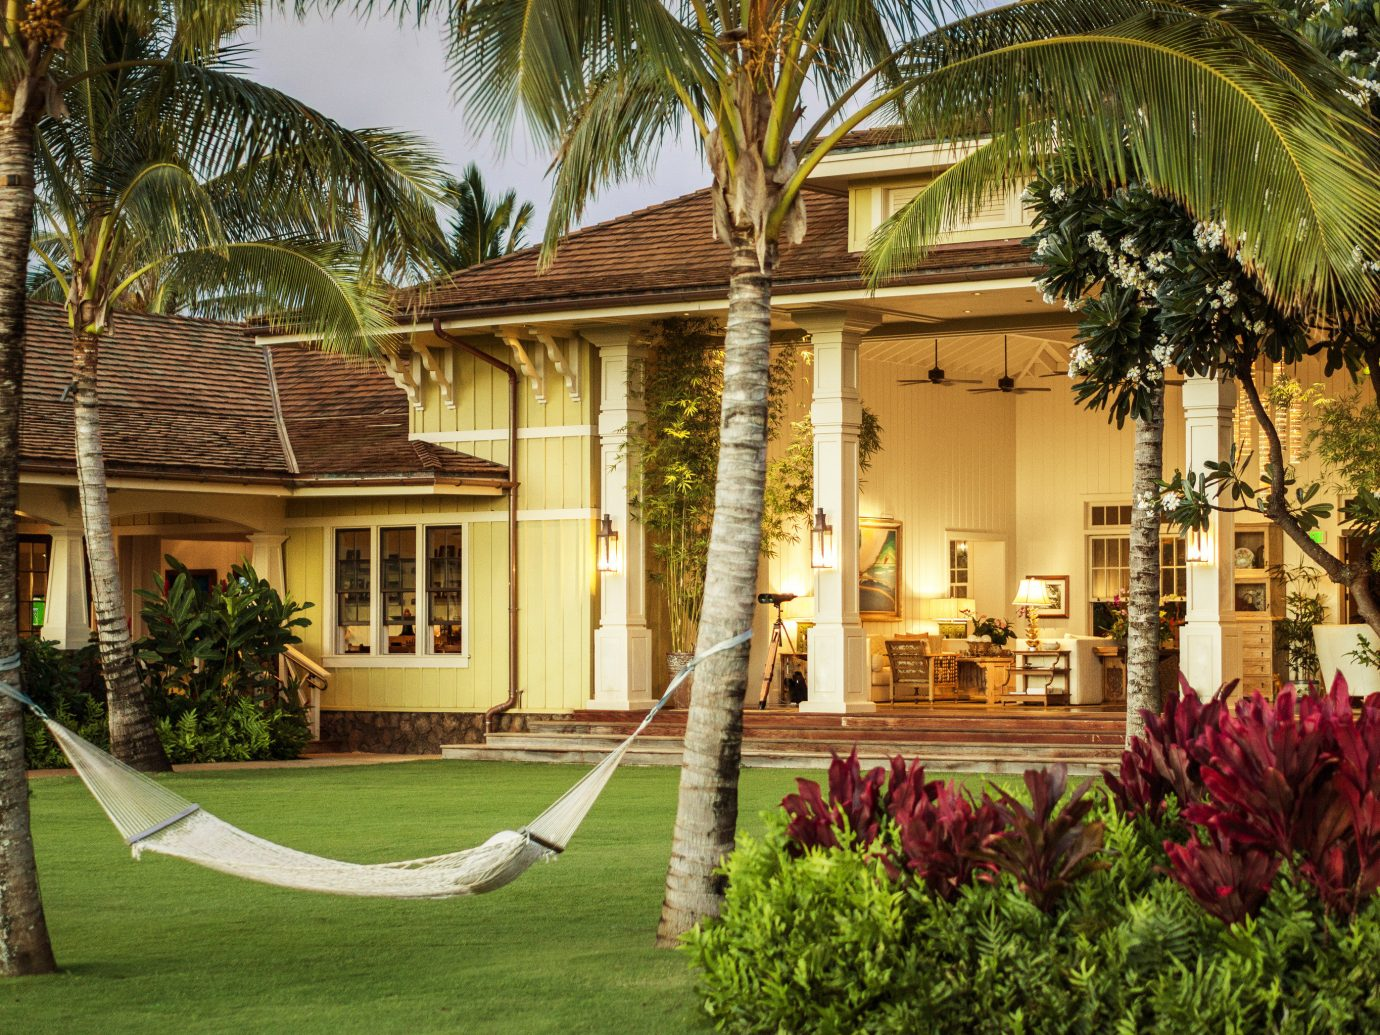 building Exterior Garden hammock Hotels palm trees Patio plants private relaxation Romance Terrace trees Tropical outdoor grass property estate Resort house home mansion Villa hacienda backyard Courtyard palm